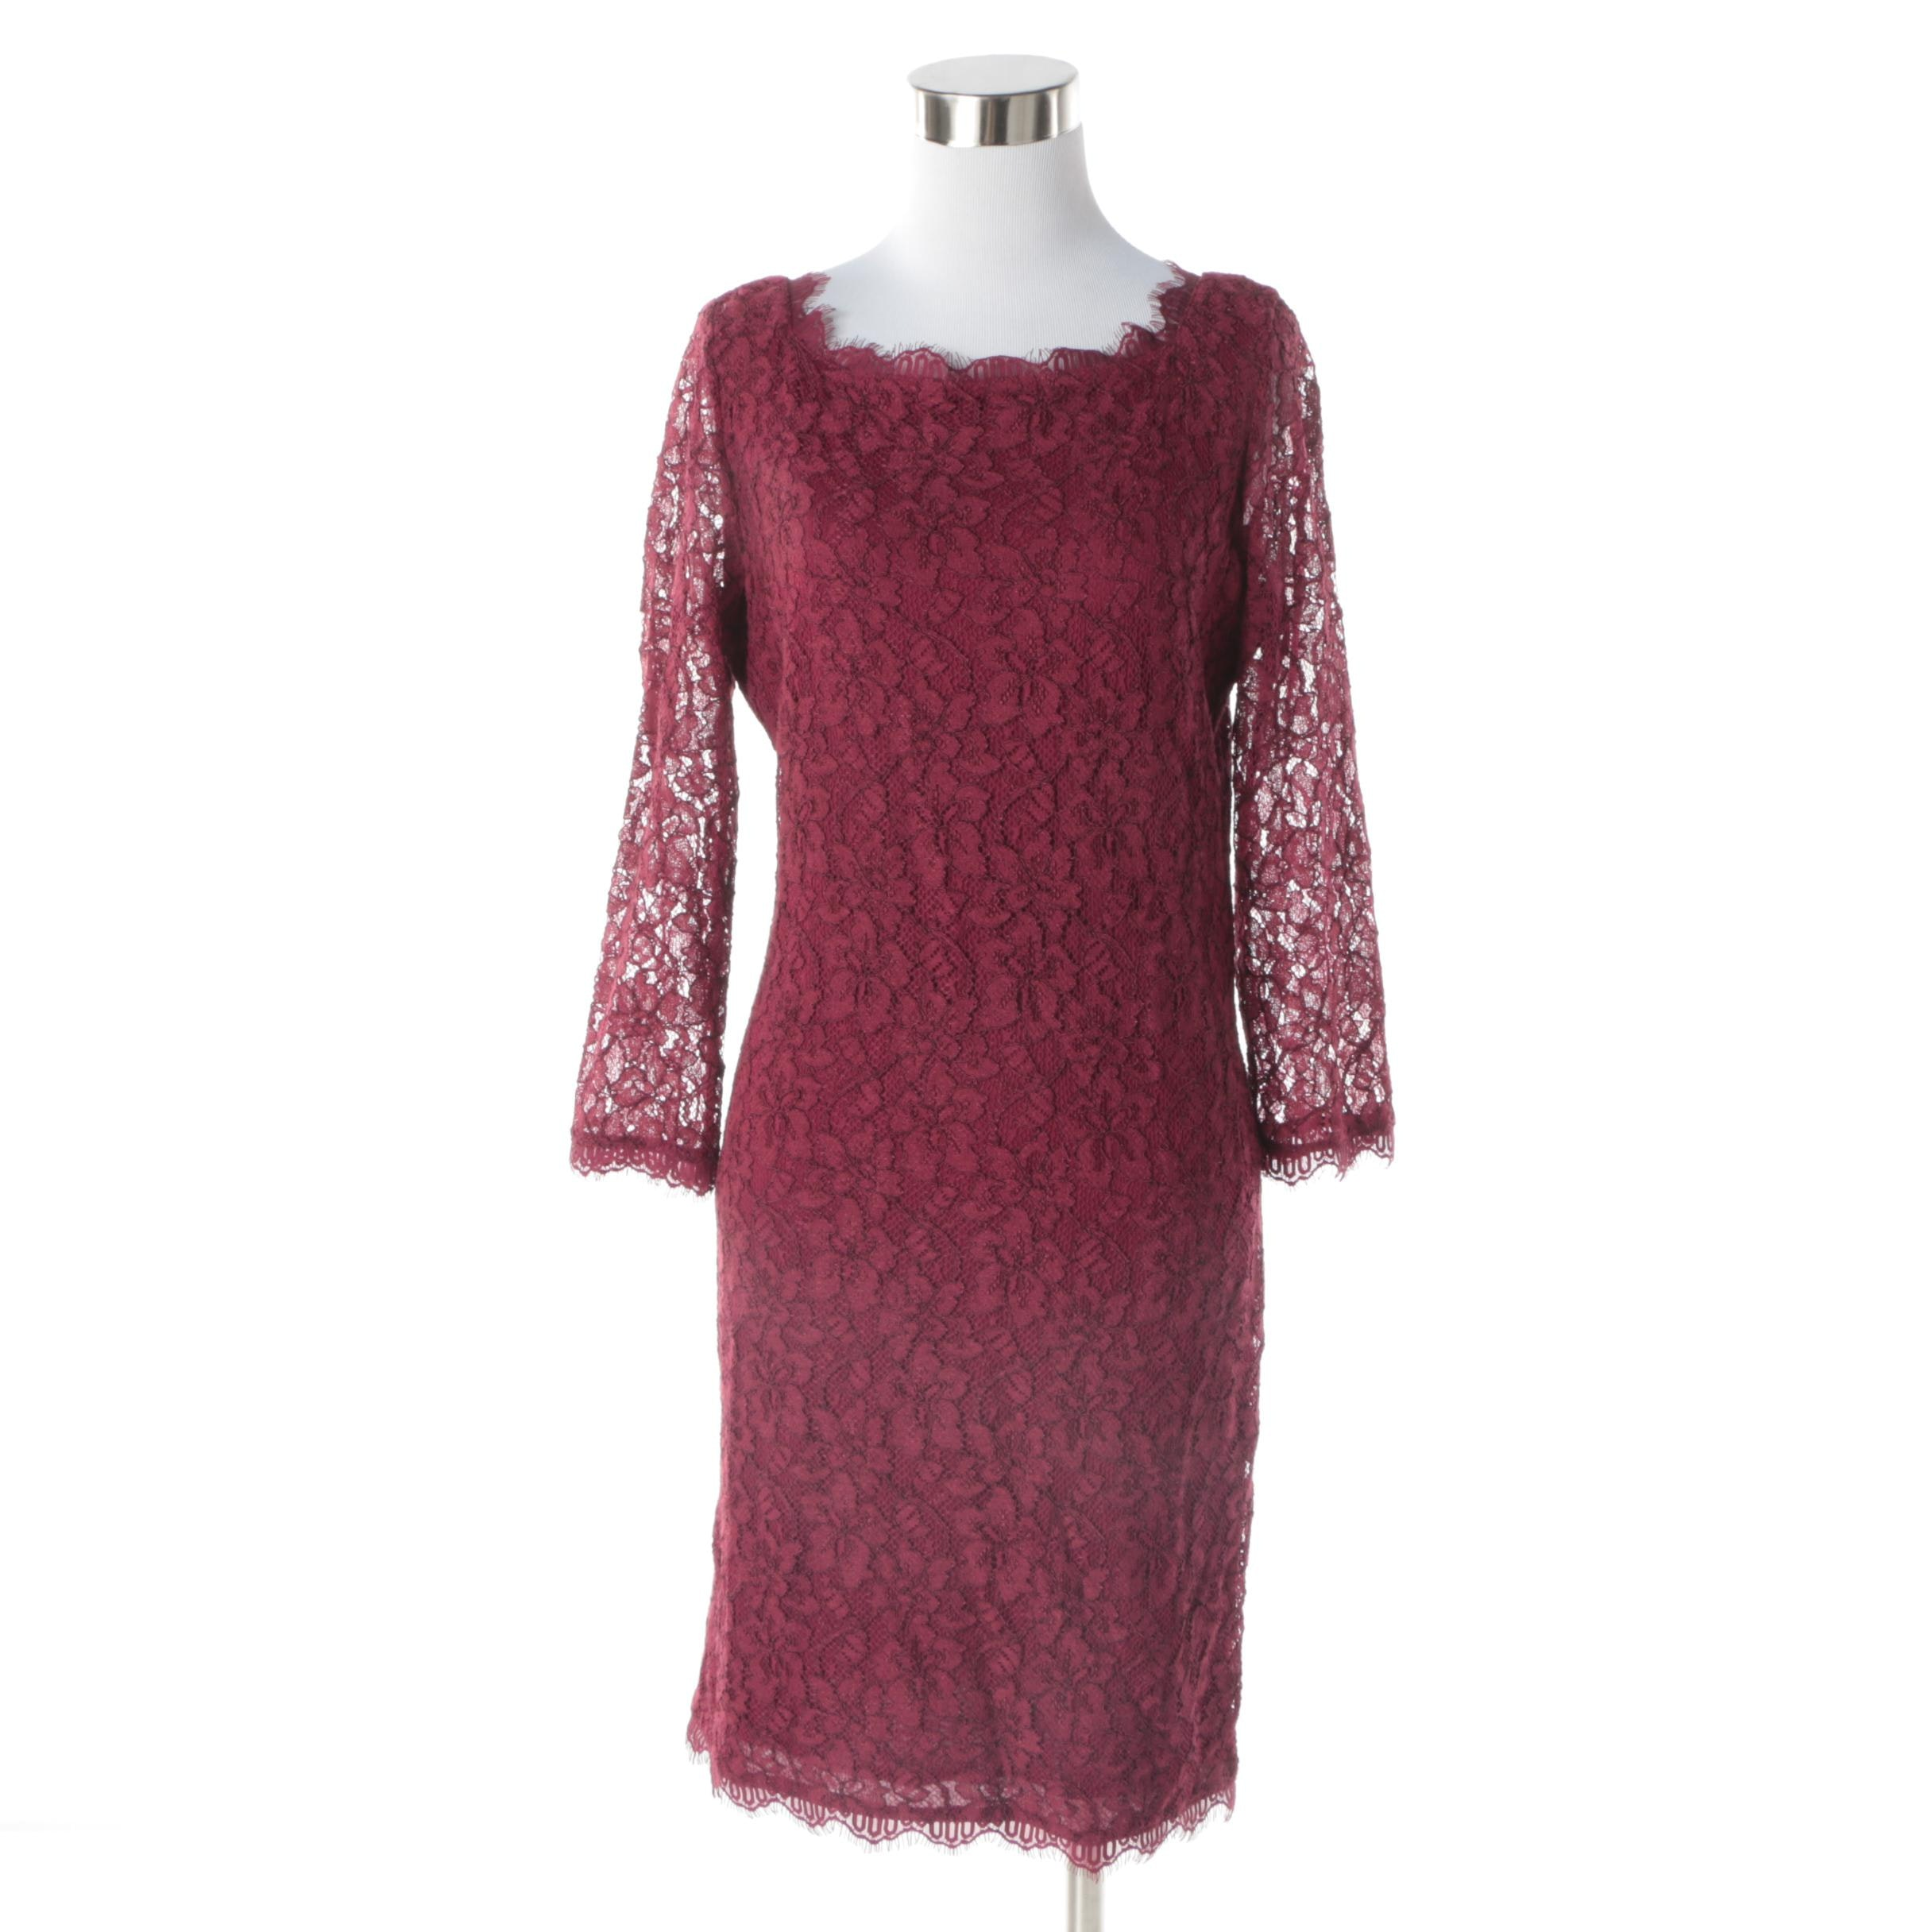 Diane von Furstenberg Zarita Burgundy Lace Cocktail Dress